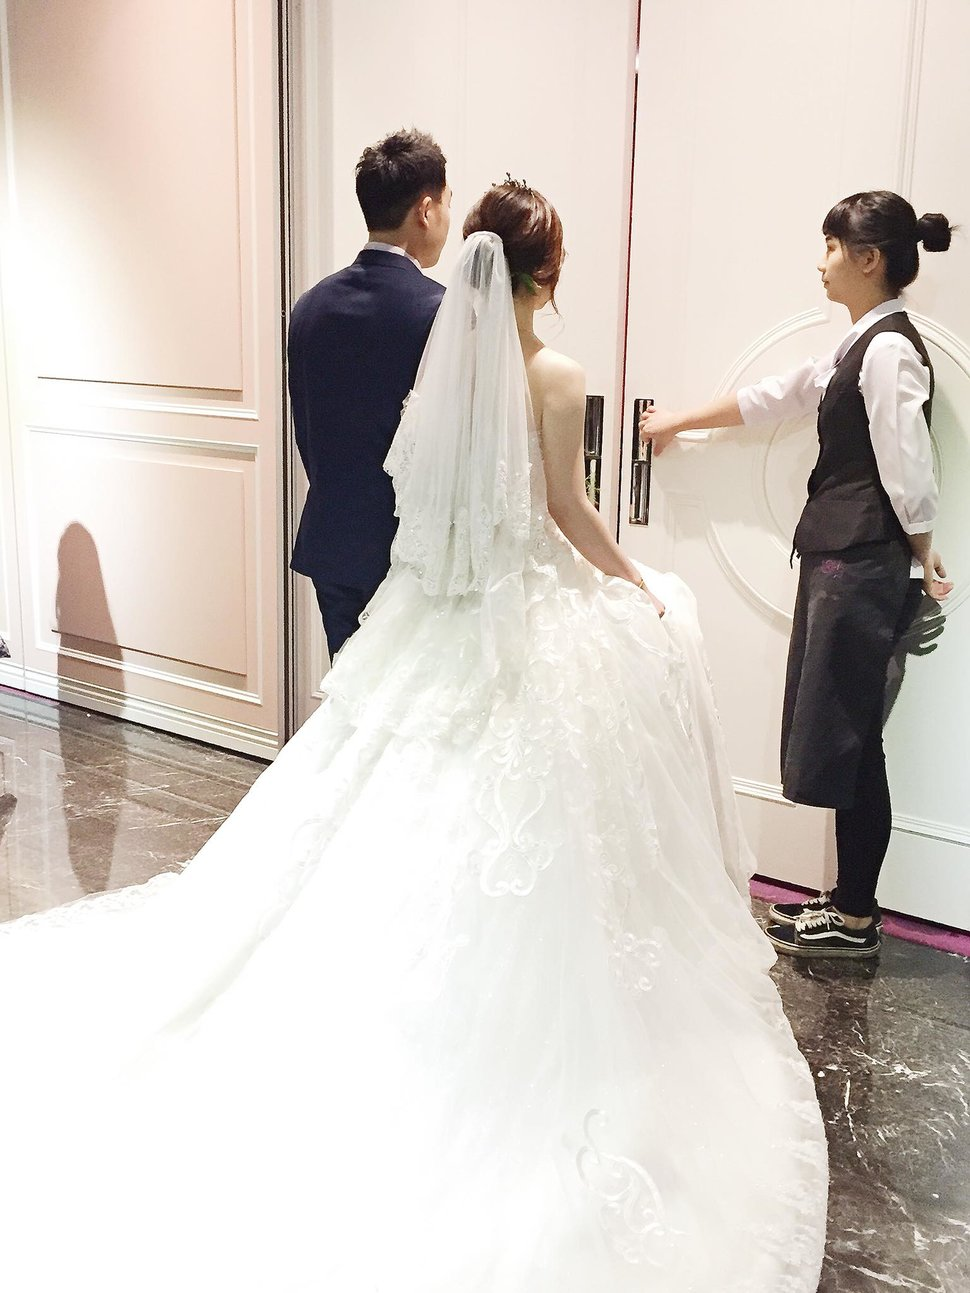 46001277_2191319760887095_6004031299583475712_o - Alice Bridal stylist《結婚吧》